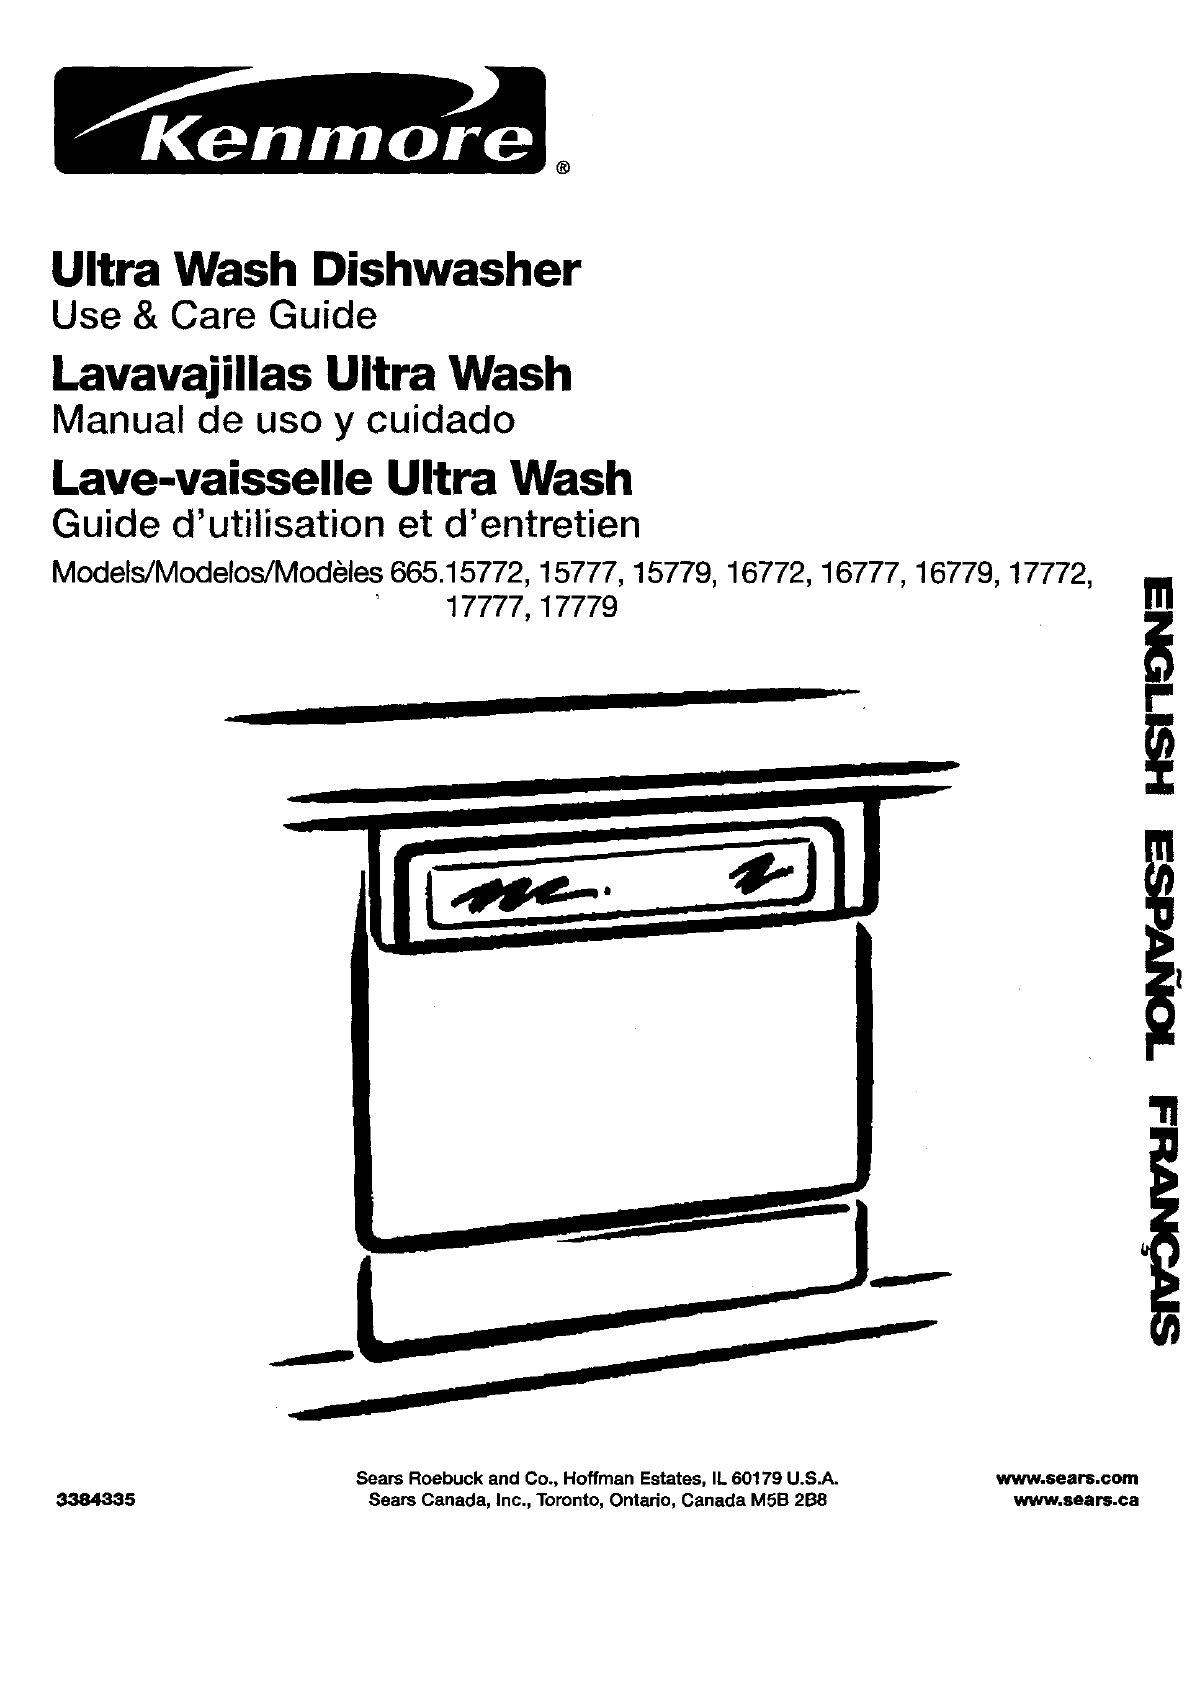 kenmore dishwasher 665 owners manual free owners manual u2022 rh wordworksbysea com Kenmore Portable Dishwasher Manual Kenmore Portable Dishwasher Manual